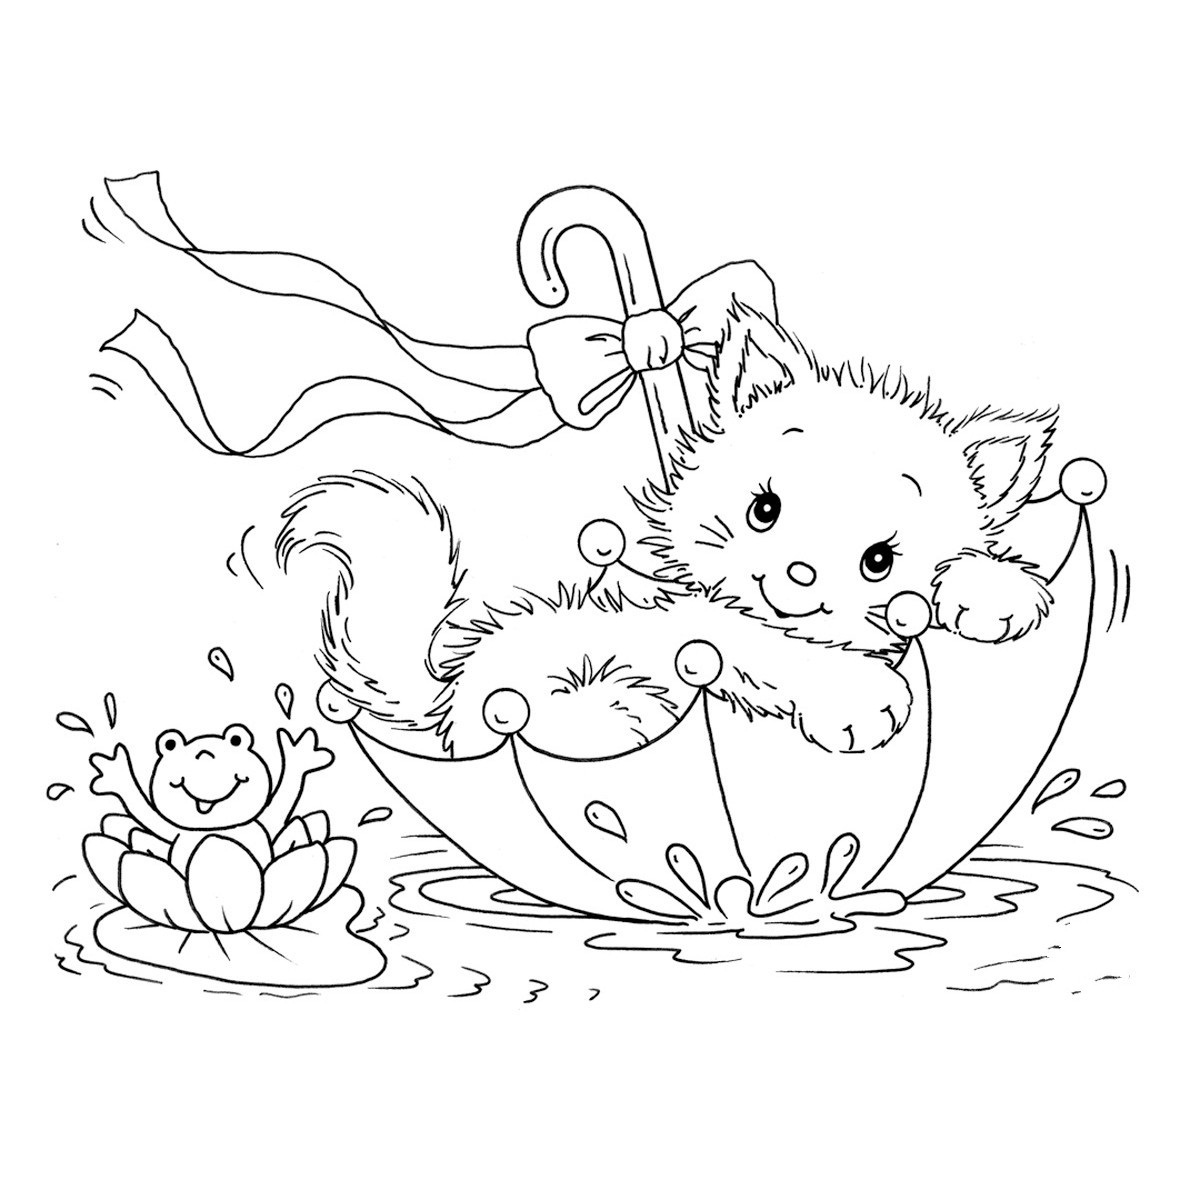 cat coloring pictures realistic cat coloring page free printable coloring pages pictures cat coloring